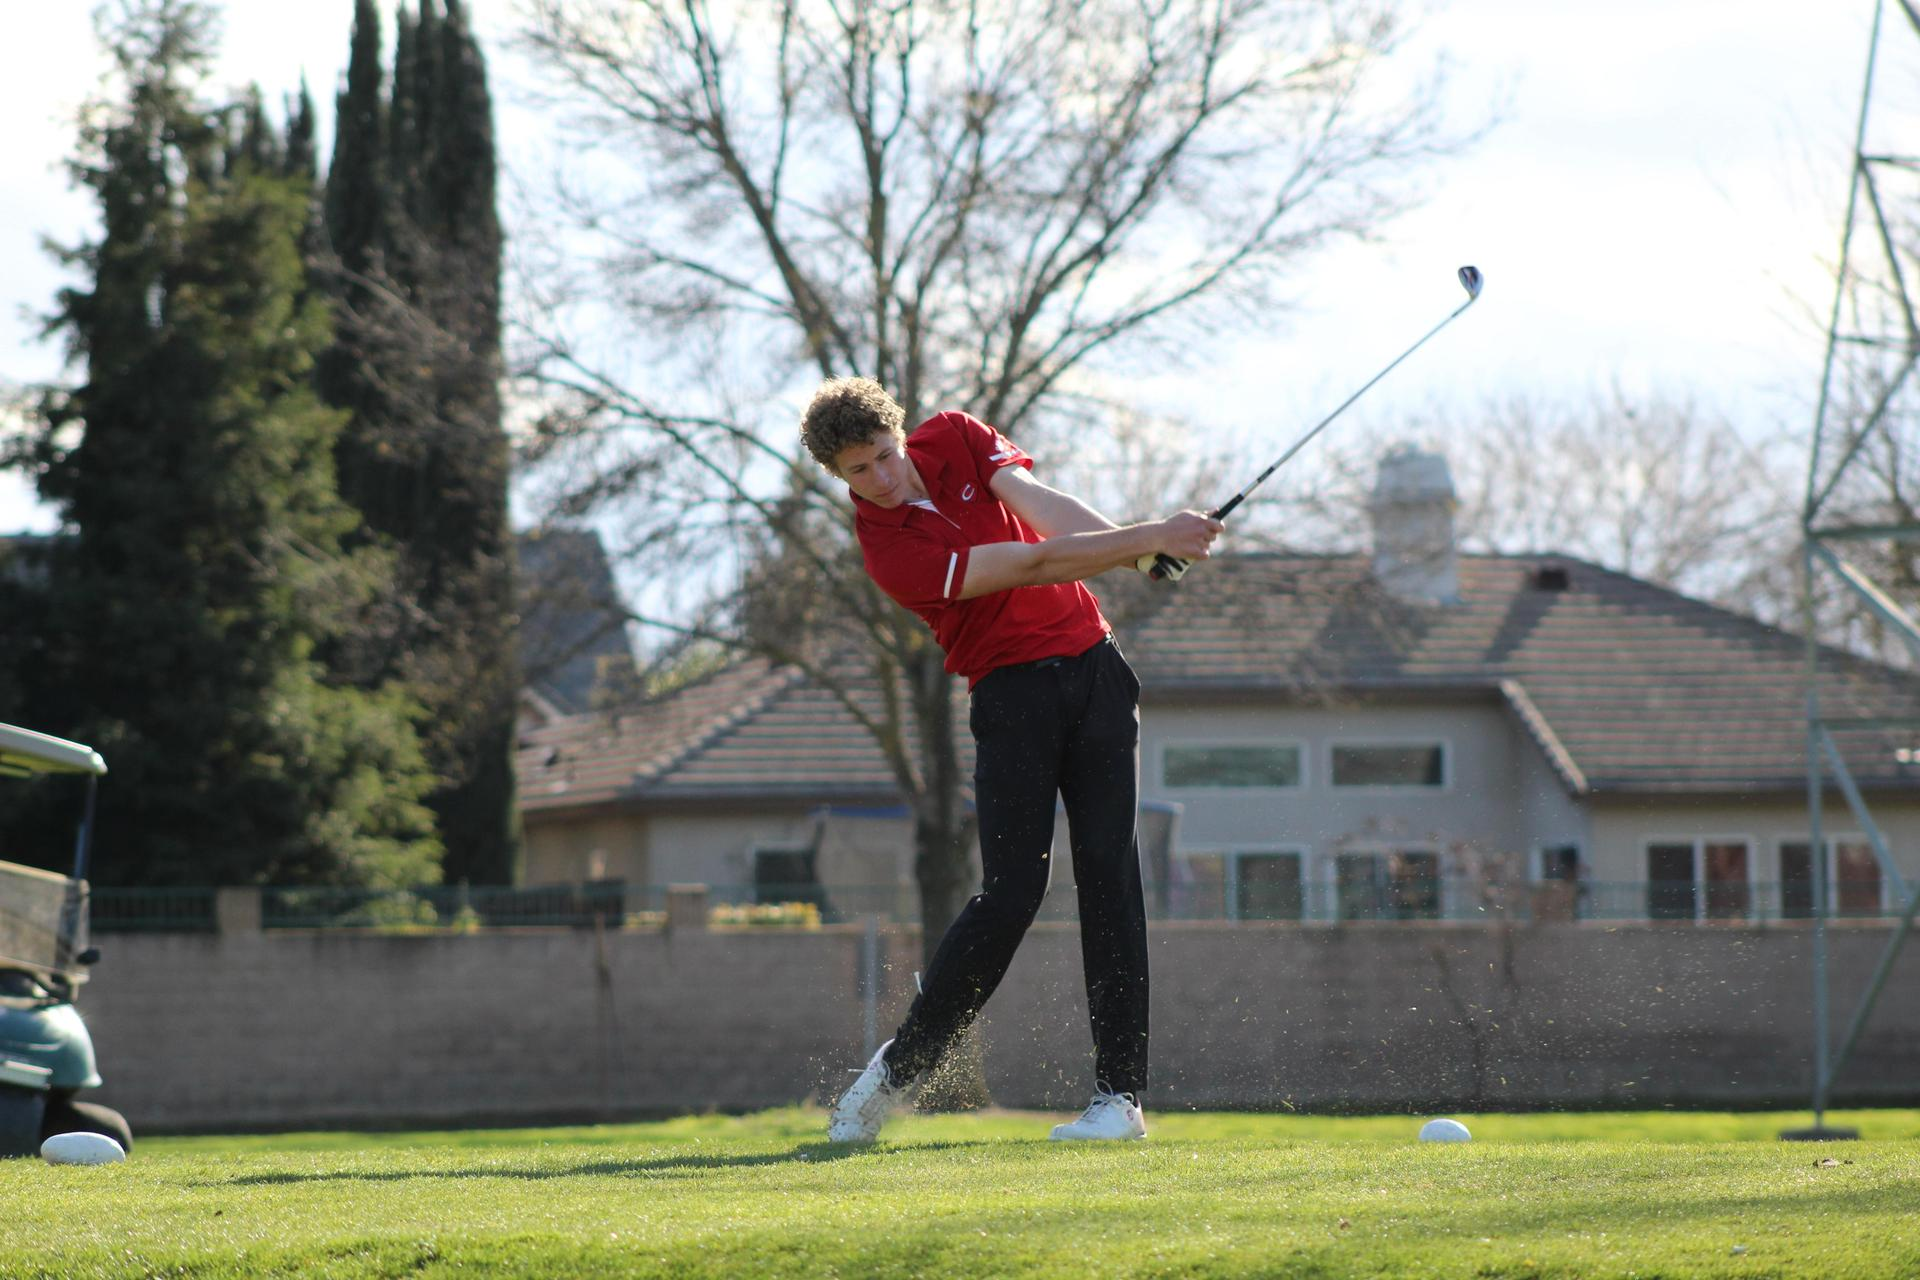 Golfers in action against Yosemite